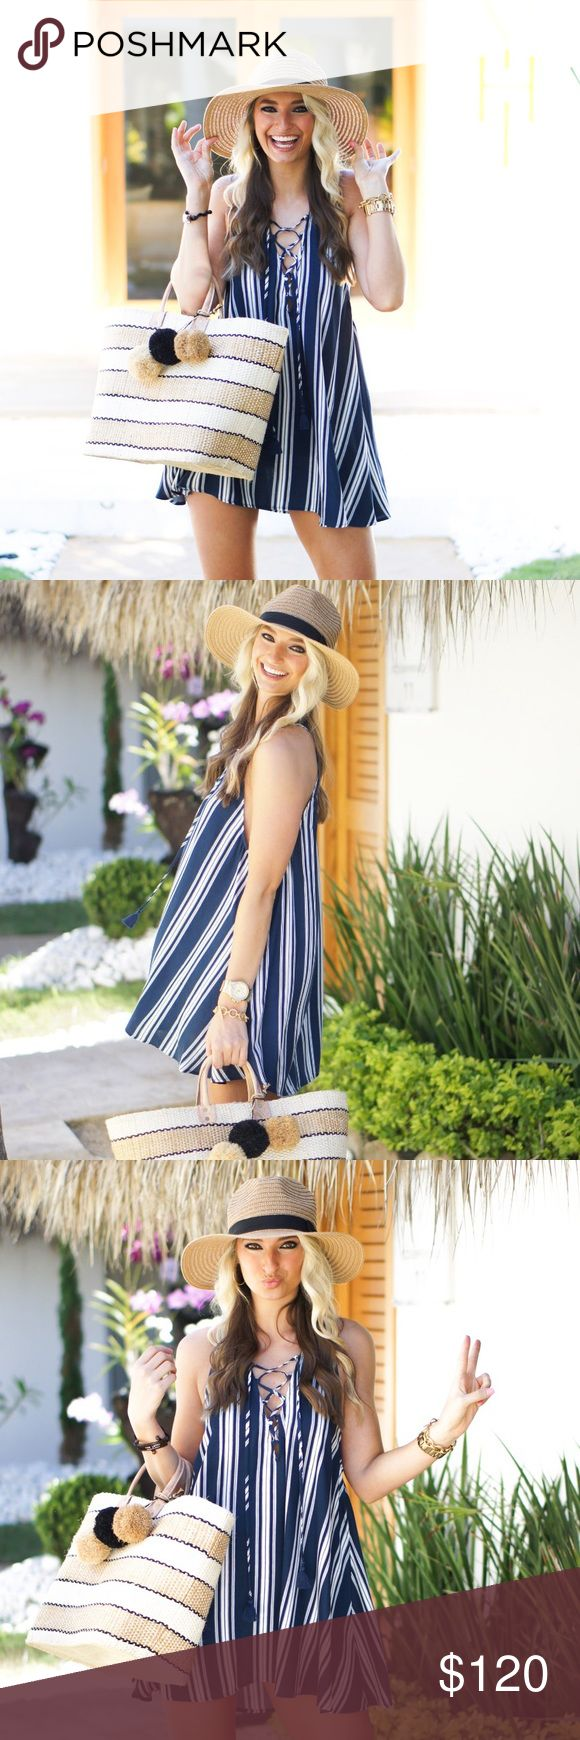 Show Me Your Mumu Rancho Mirage Tunic Dress Navy Perfect for a sail around the marina or coffee at that new cafe around the corner that you have been meaning to check out. Navy Stripe Breeze is super easy going. With her luxe blue and crisp white, she's basically as versatile as denim. Browns, beige, reds, and yellows all add to her strong personality. Finish her off with some silver and gold rings and cuffs. NWOT**  *100% Rayon *Laces up front *Can be worn as tunic or short dress *Basically…